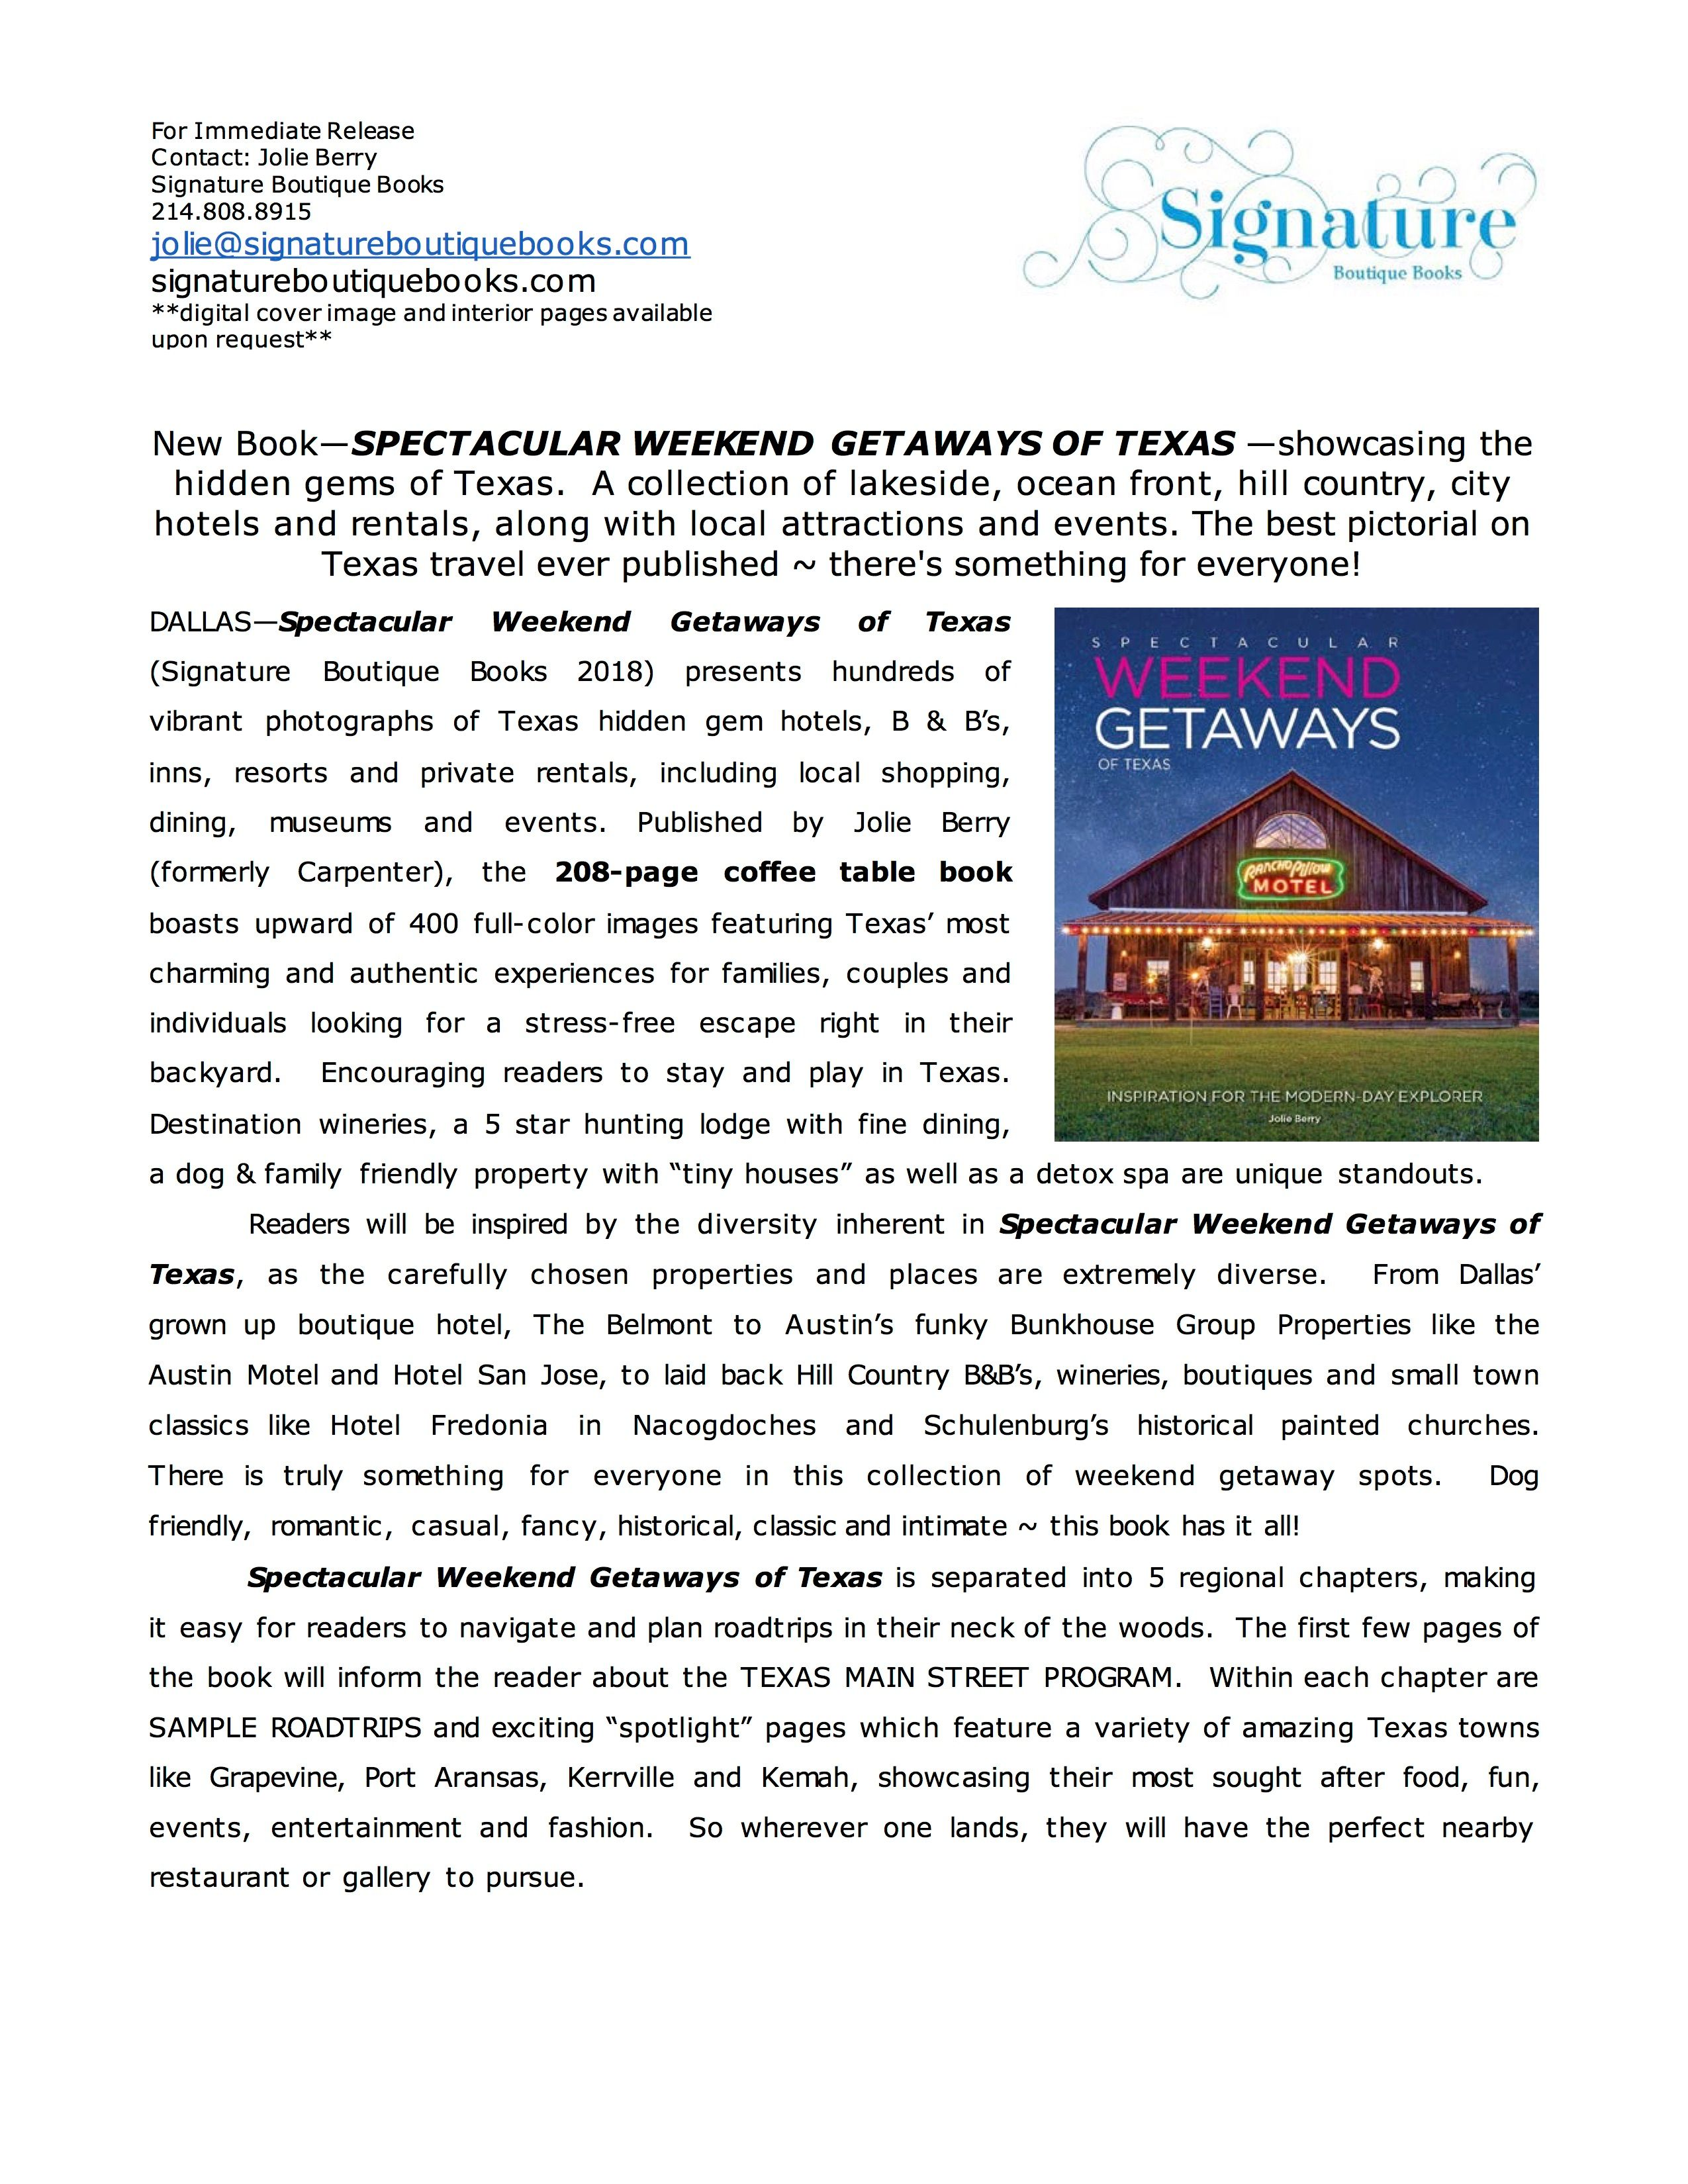 Weekend Getaways Press Release